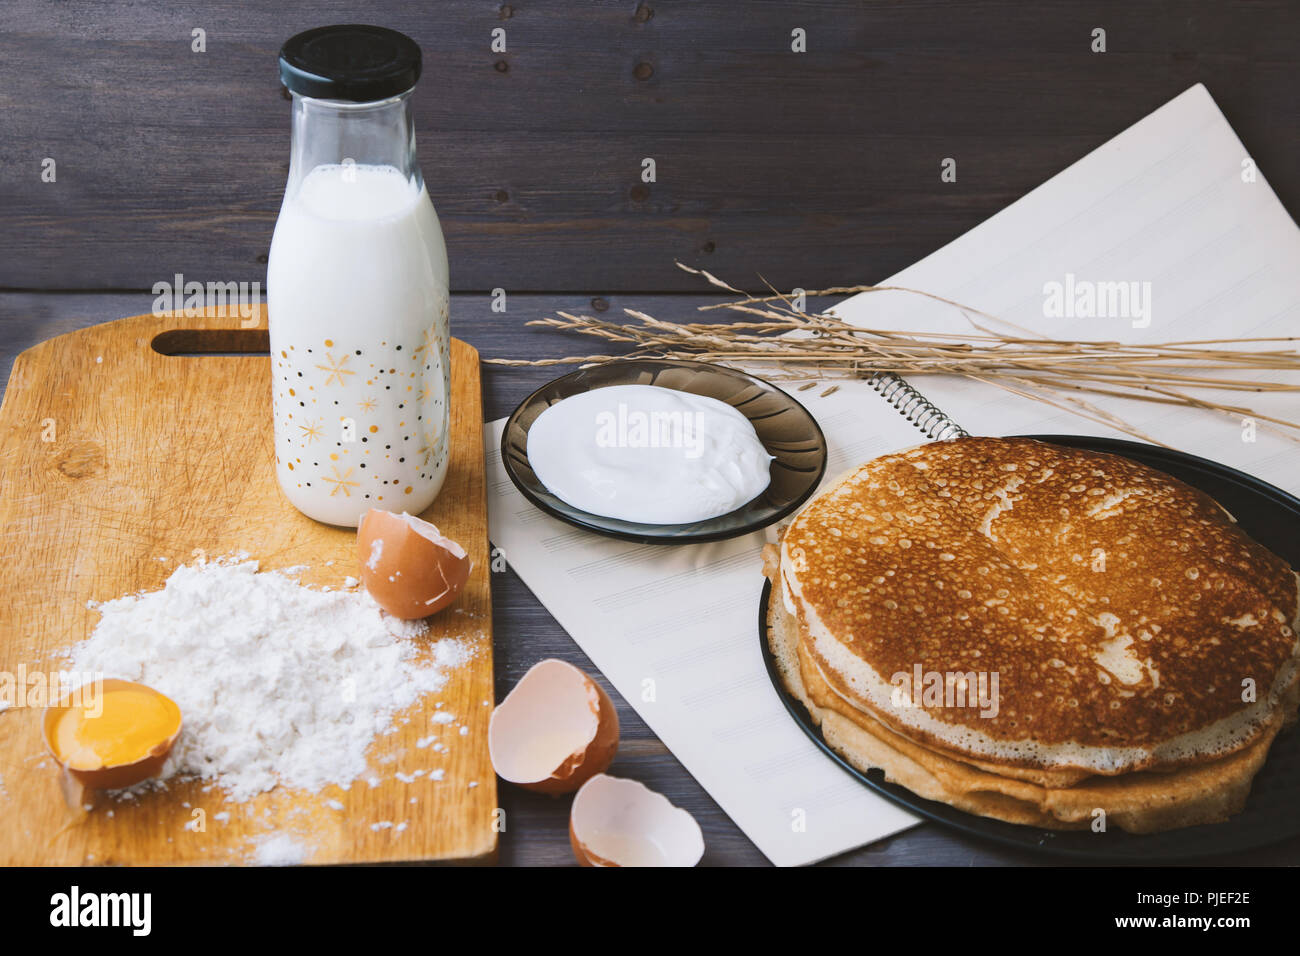 fresh, hot pancakes in a frying pan, eggs, milk, flour on a wooden table - Stock Image